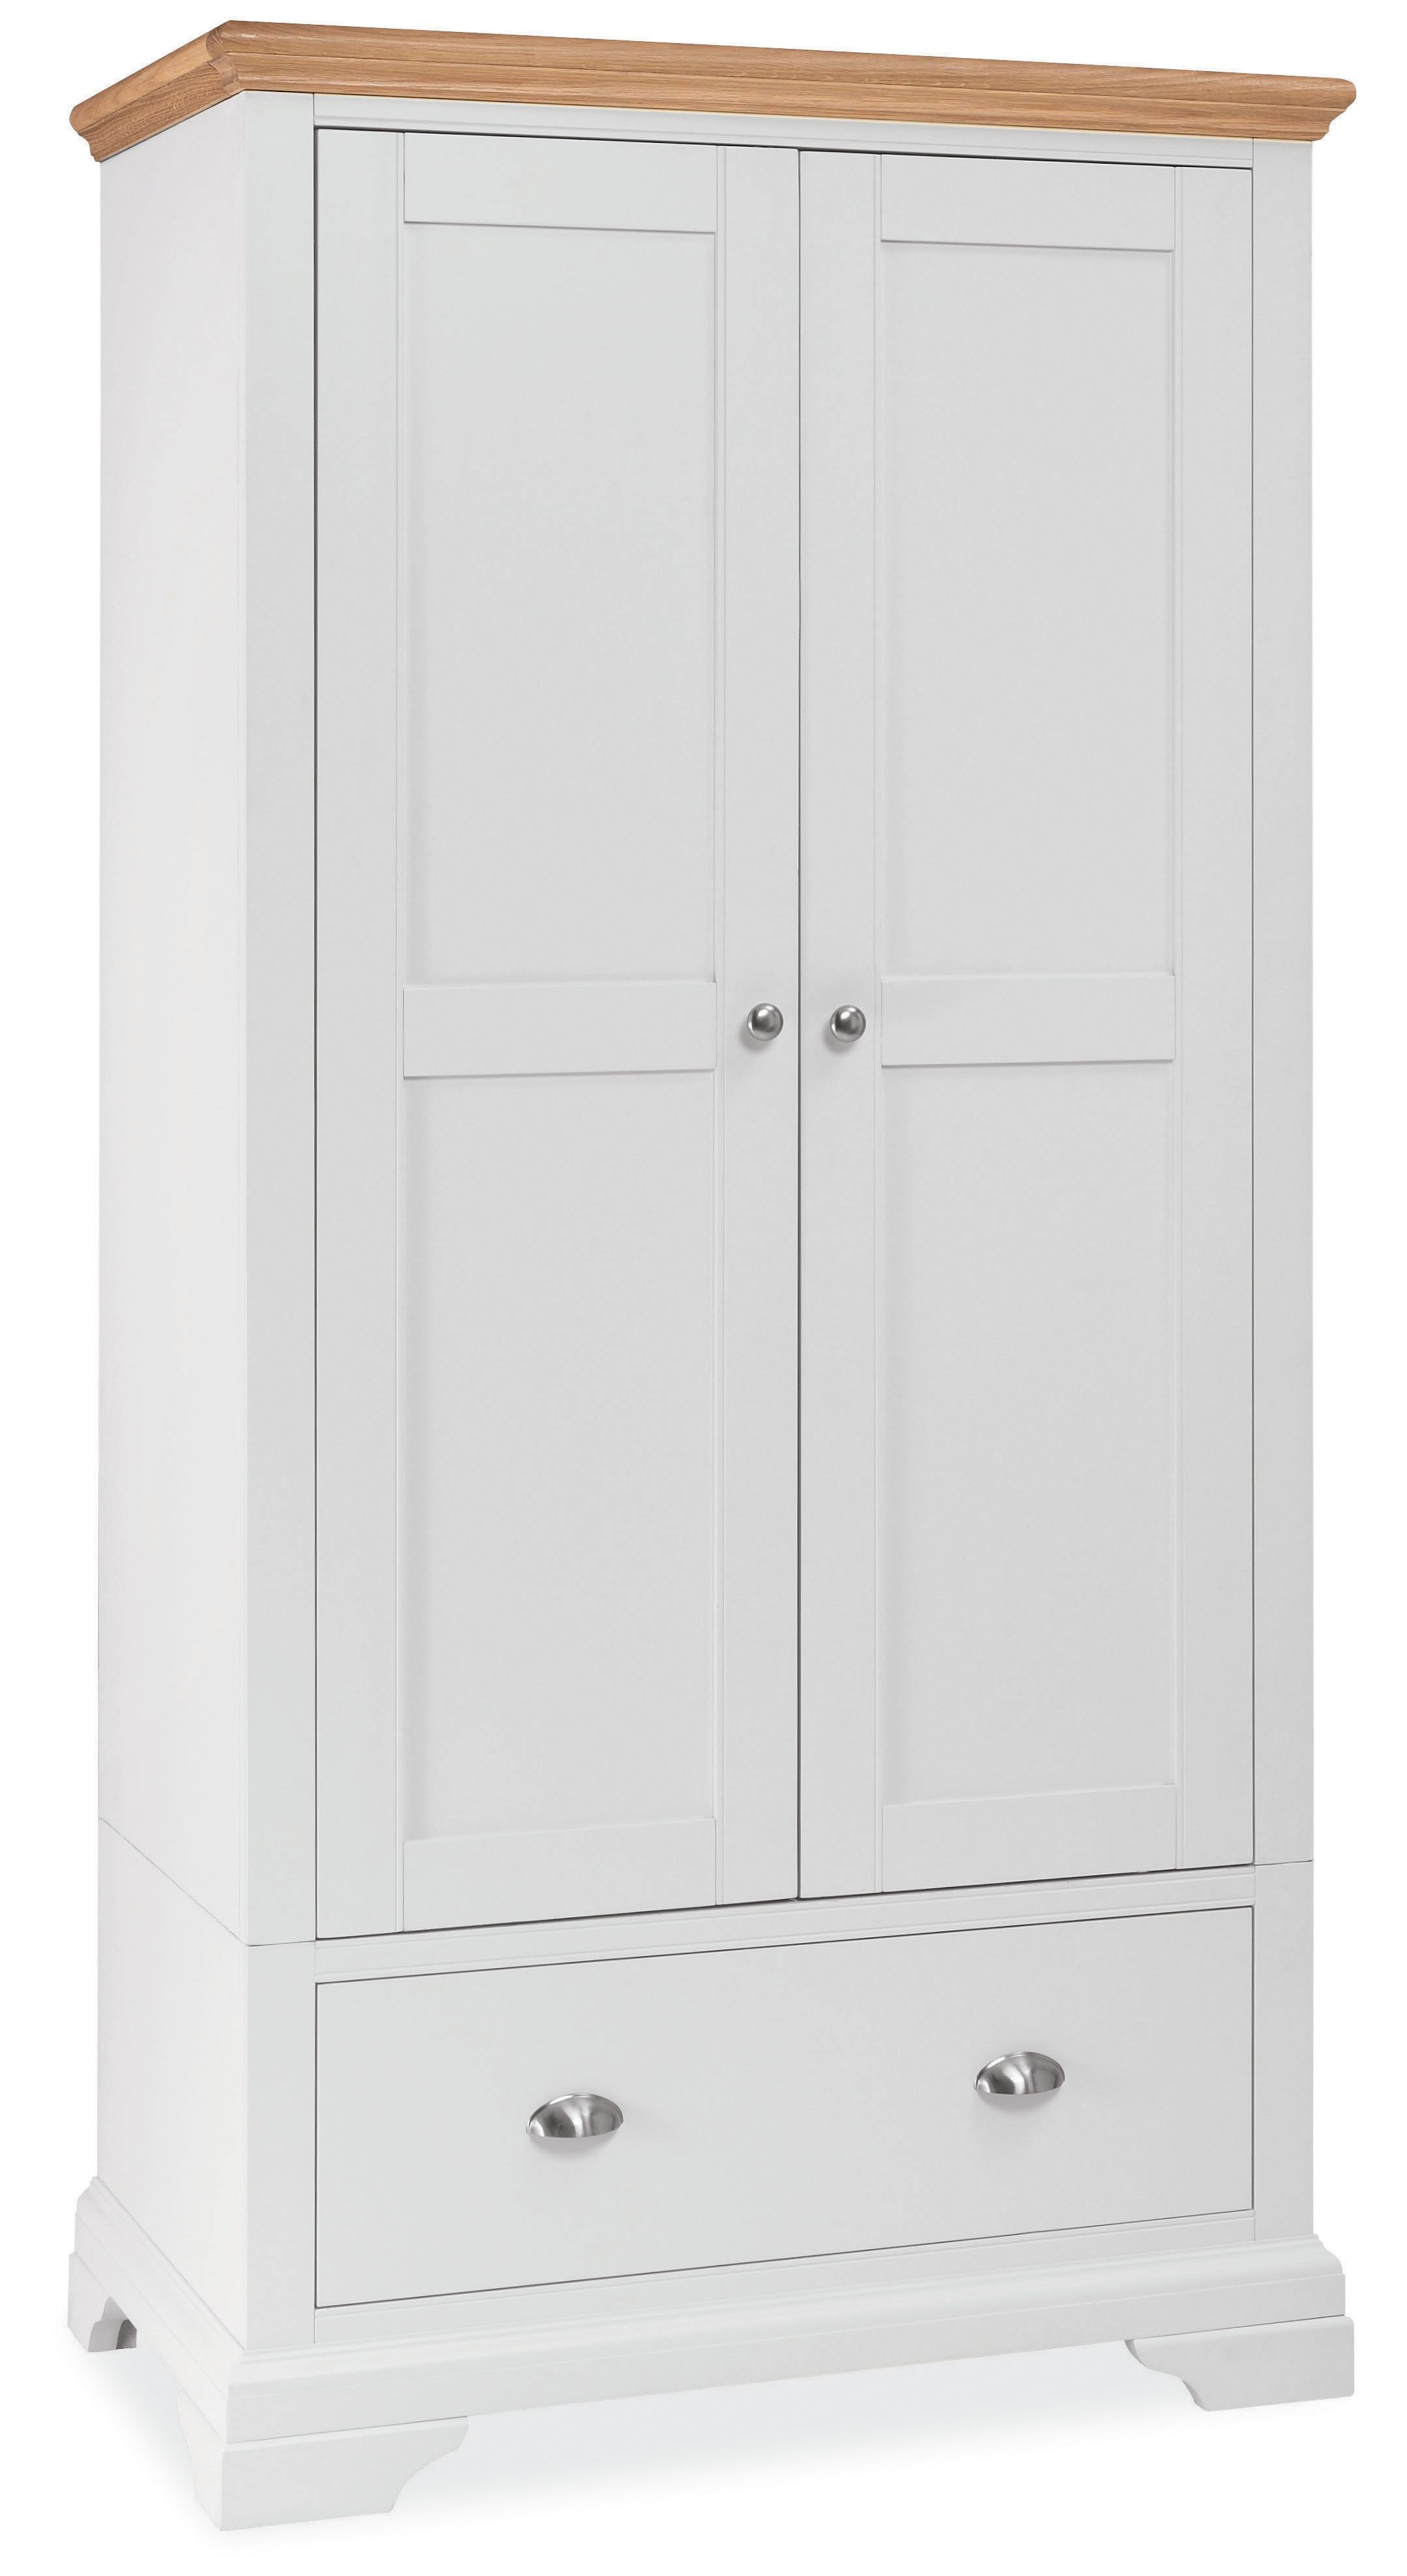 Etienne 2 Door 1 Drawer Wardrobe